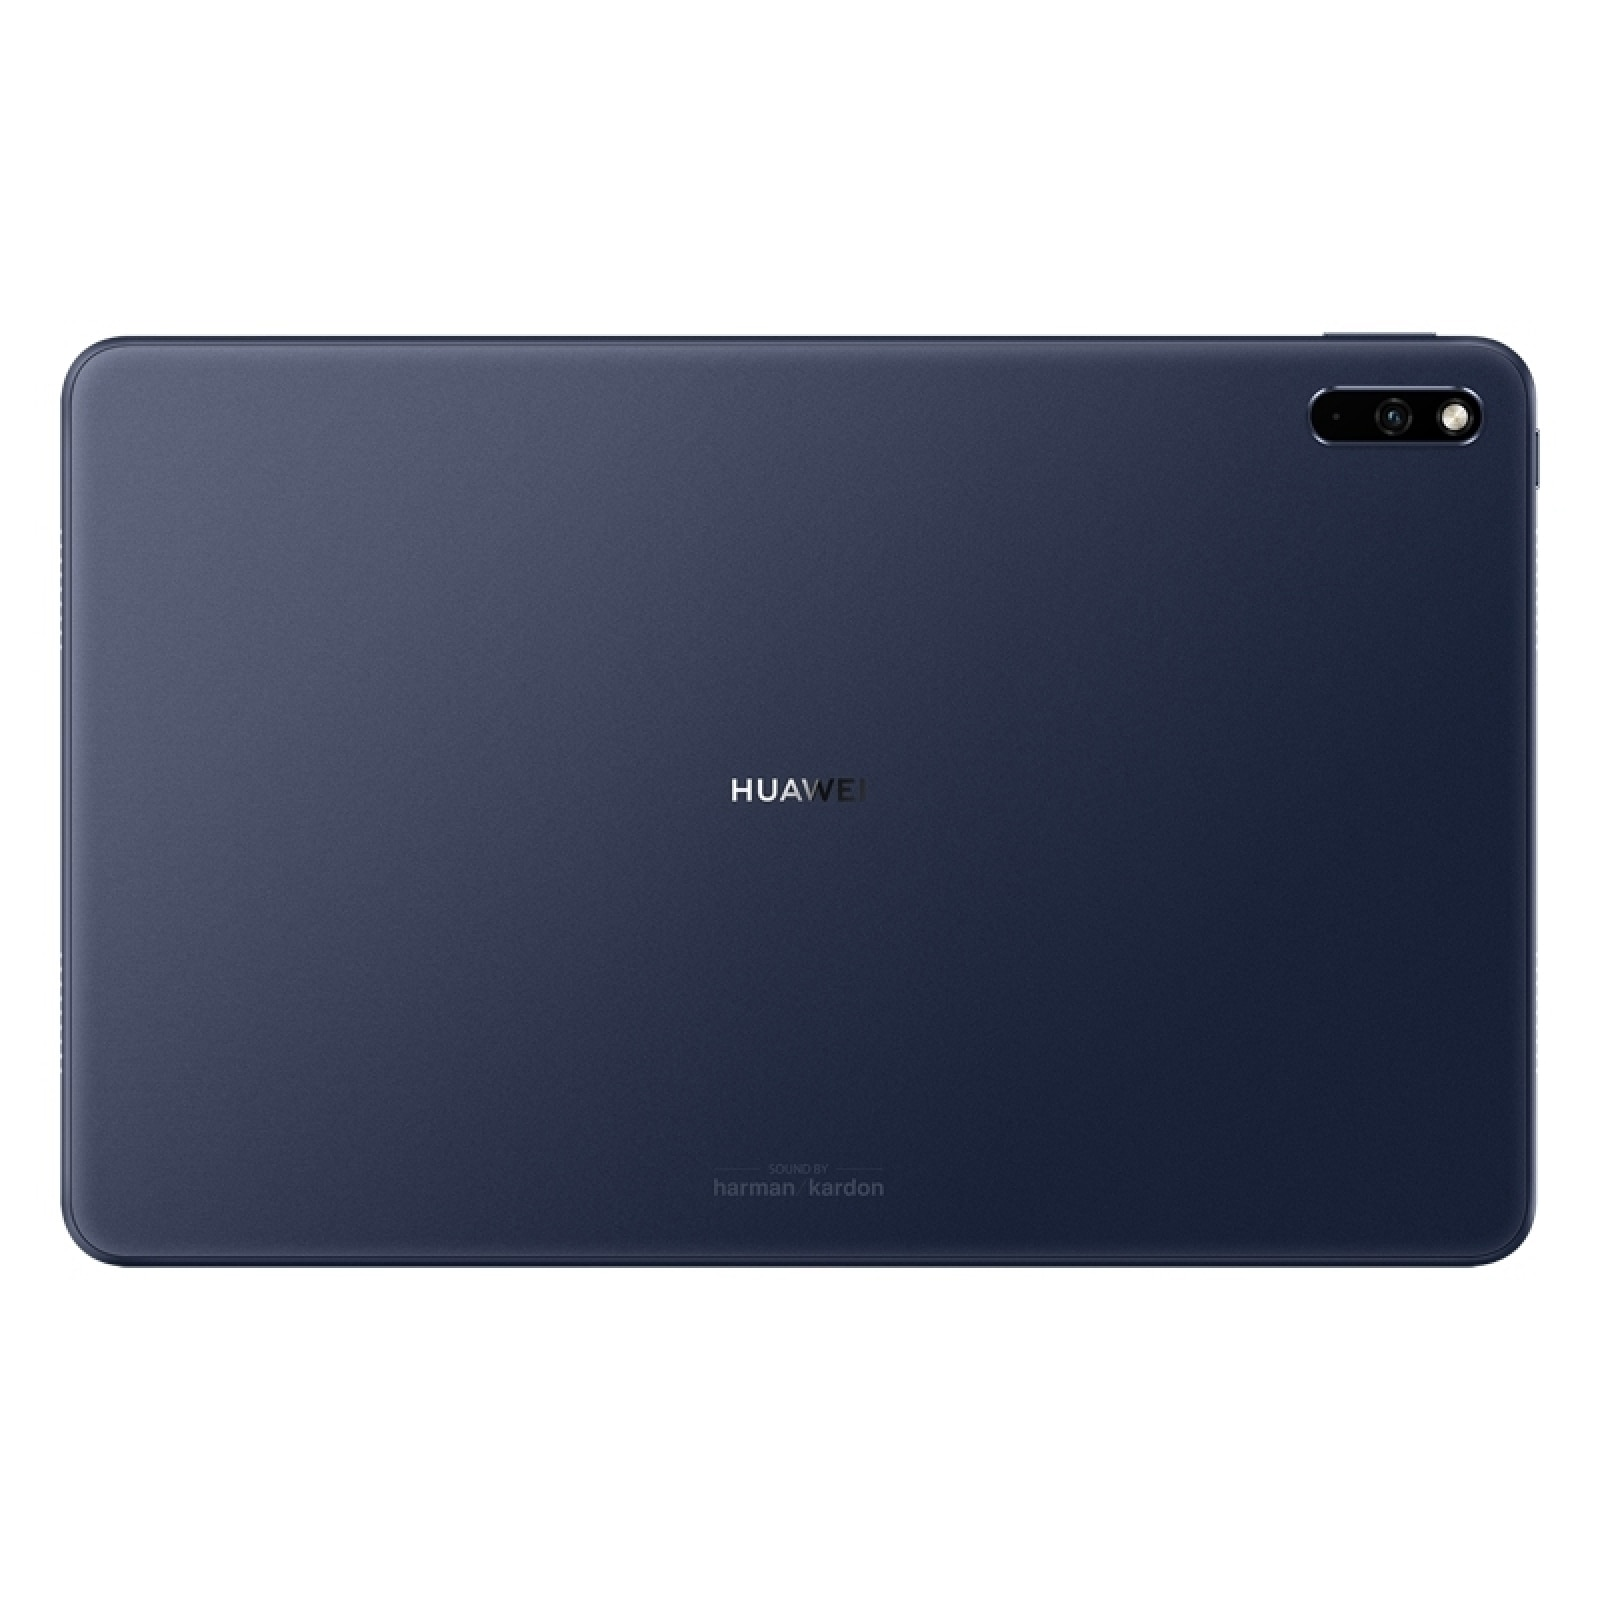 Huawei MatePad 4G 5G BAH3-AN10 AL00 W59 10.4 Inch 6GB 128GB EMUI 10.1 Android 10 HUAWEI Hisilicon Kirin 810 820 Octa Core Tablet